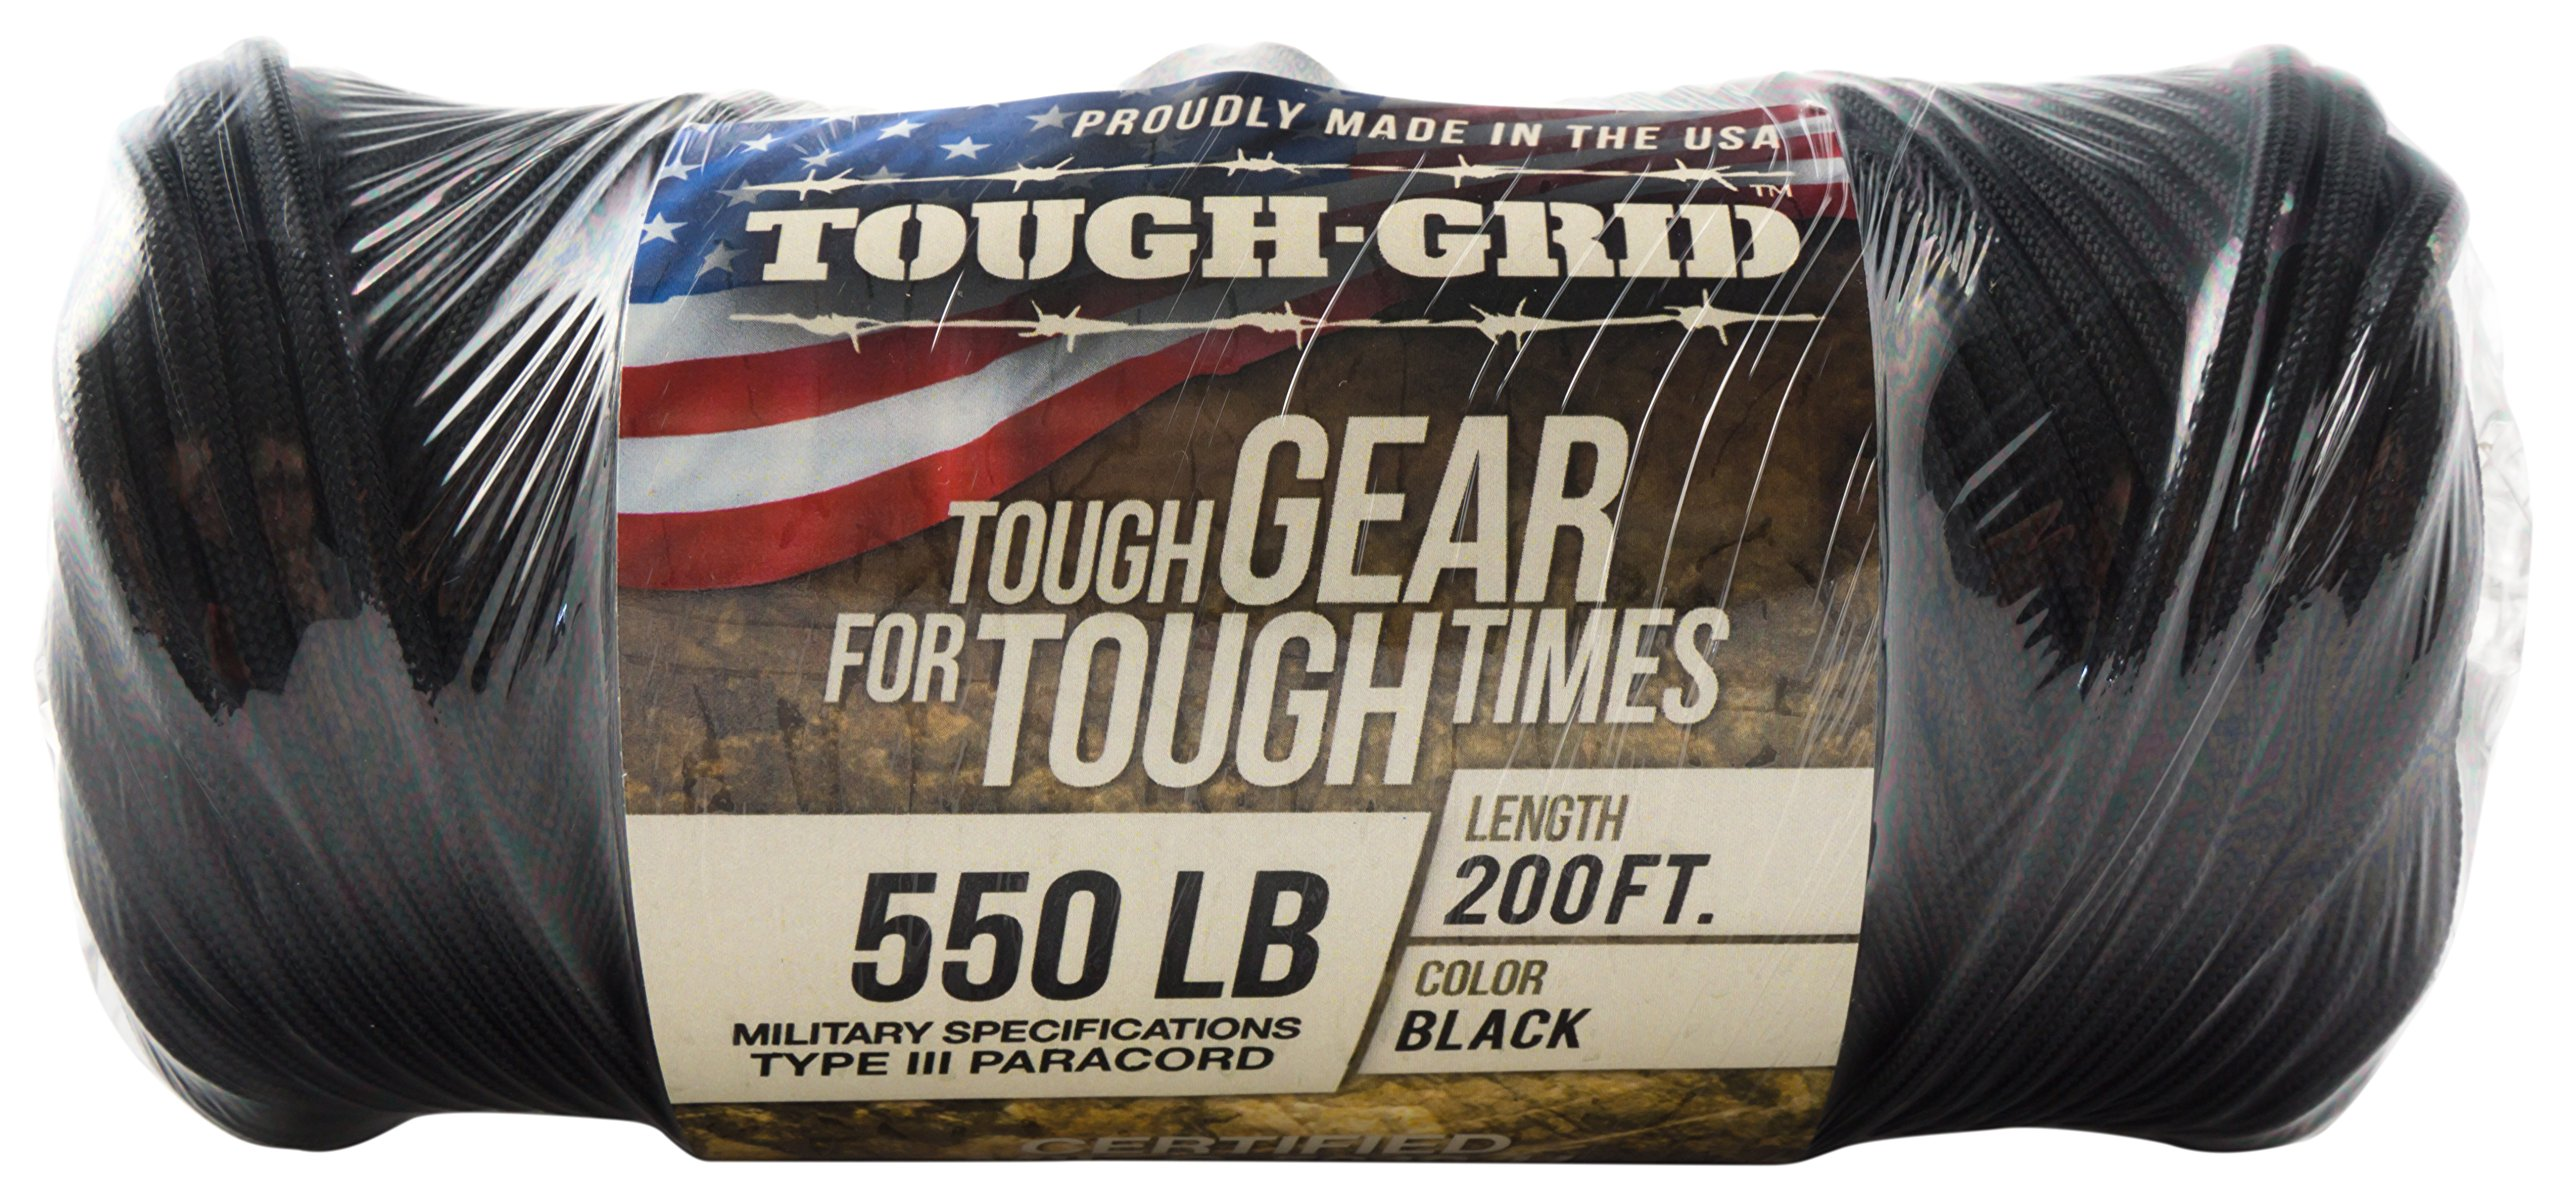 TOUGH-GRID 550lb Black Paracord/Parachute Cord - 100% Nylon Genuine Mil-Spec Type III Paracord Used by The US Military - Great for Bracelets and Lanyards - Made in The USA. 50Ft. - Black by TOUGH-GRID (Image #8)